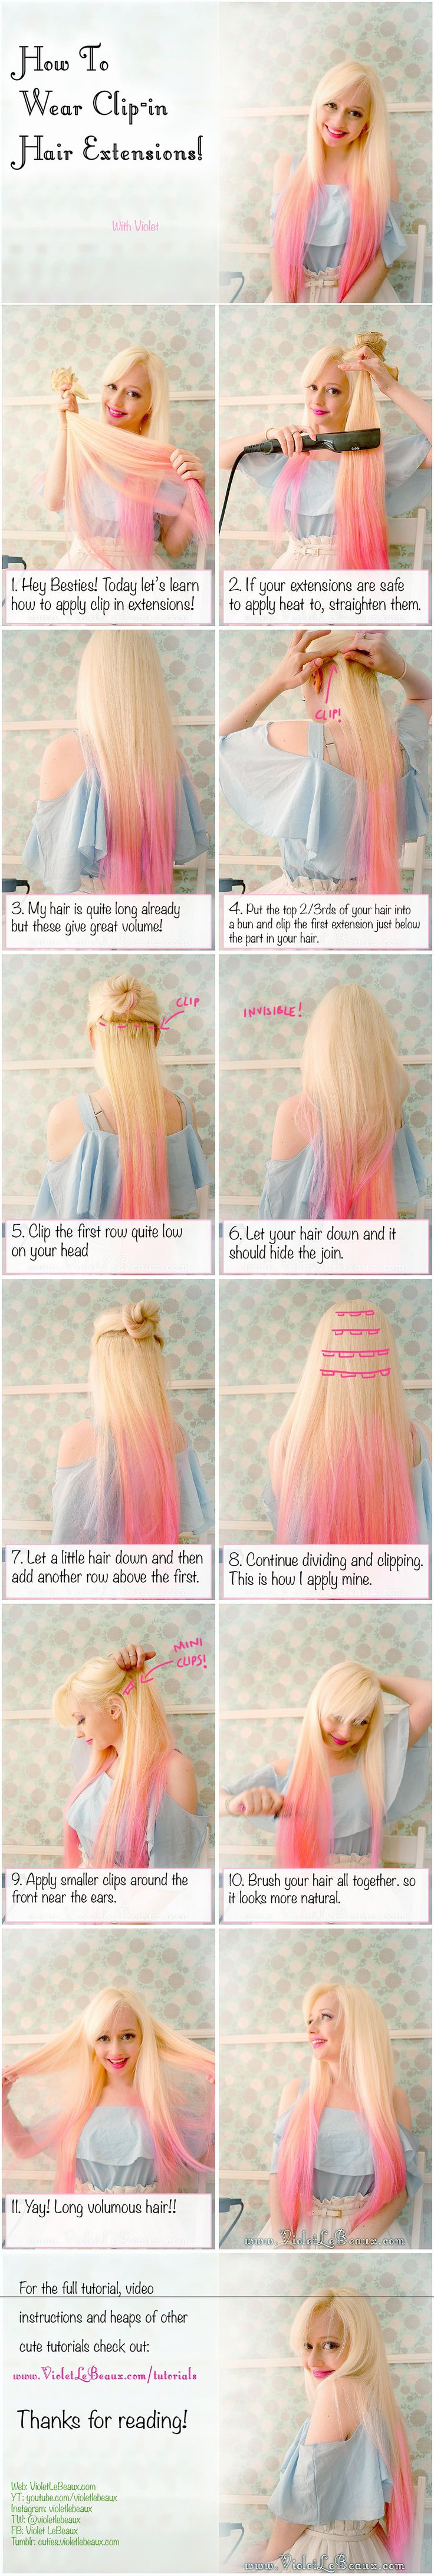 380 best clip in hair extensions images on pinterest hairstyles how to use clip in hair extensions hair tutorial by violetlebeauxiantart pmusecretfo Images